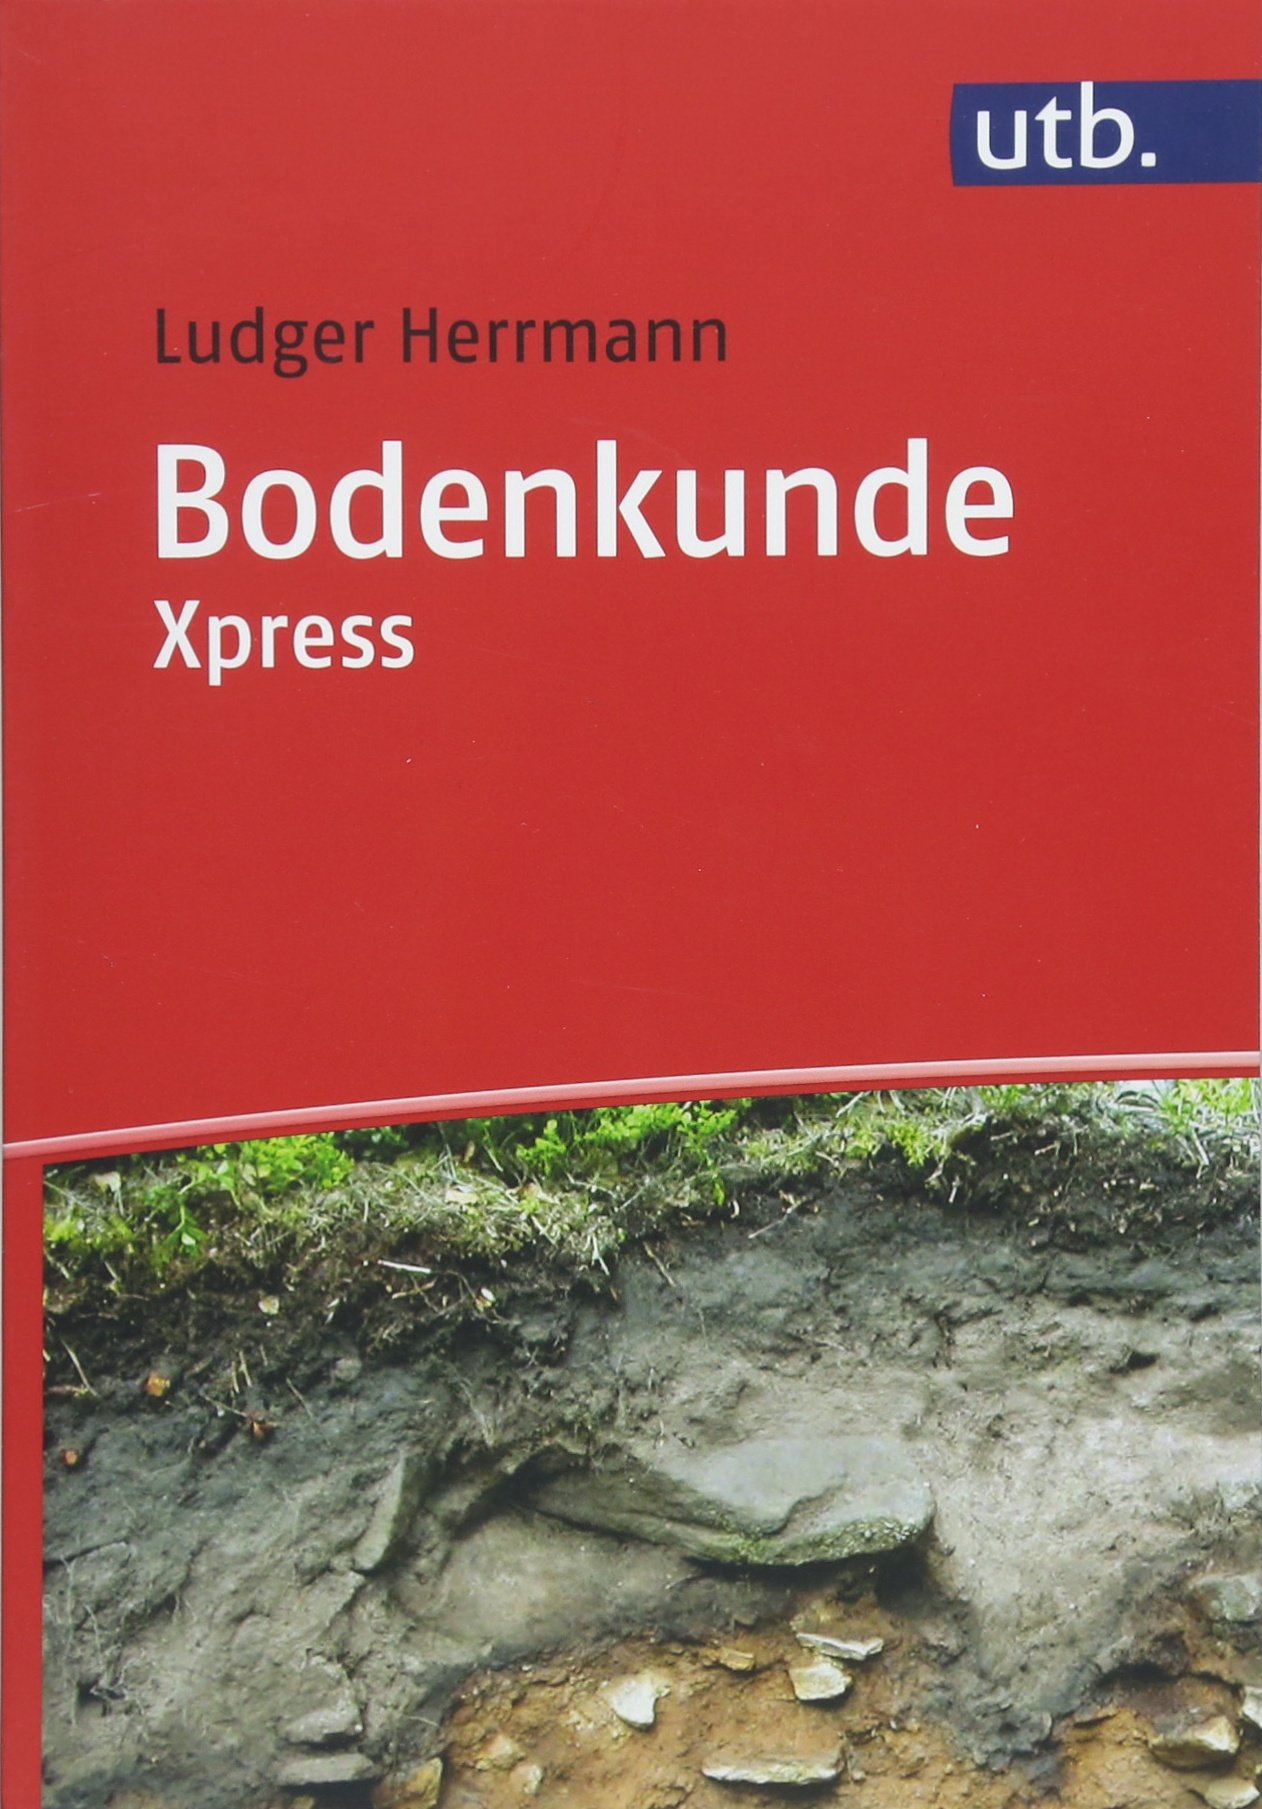 Bodenkunde Xpress